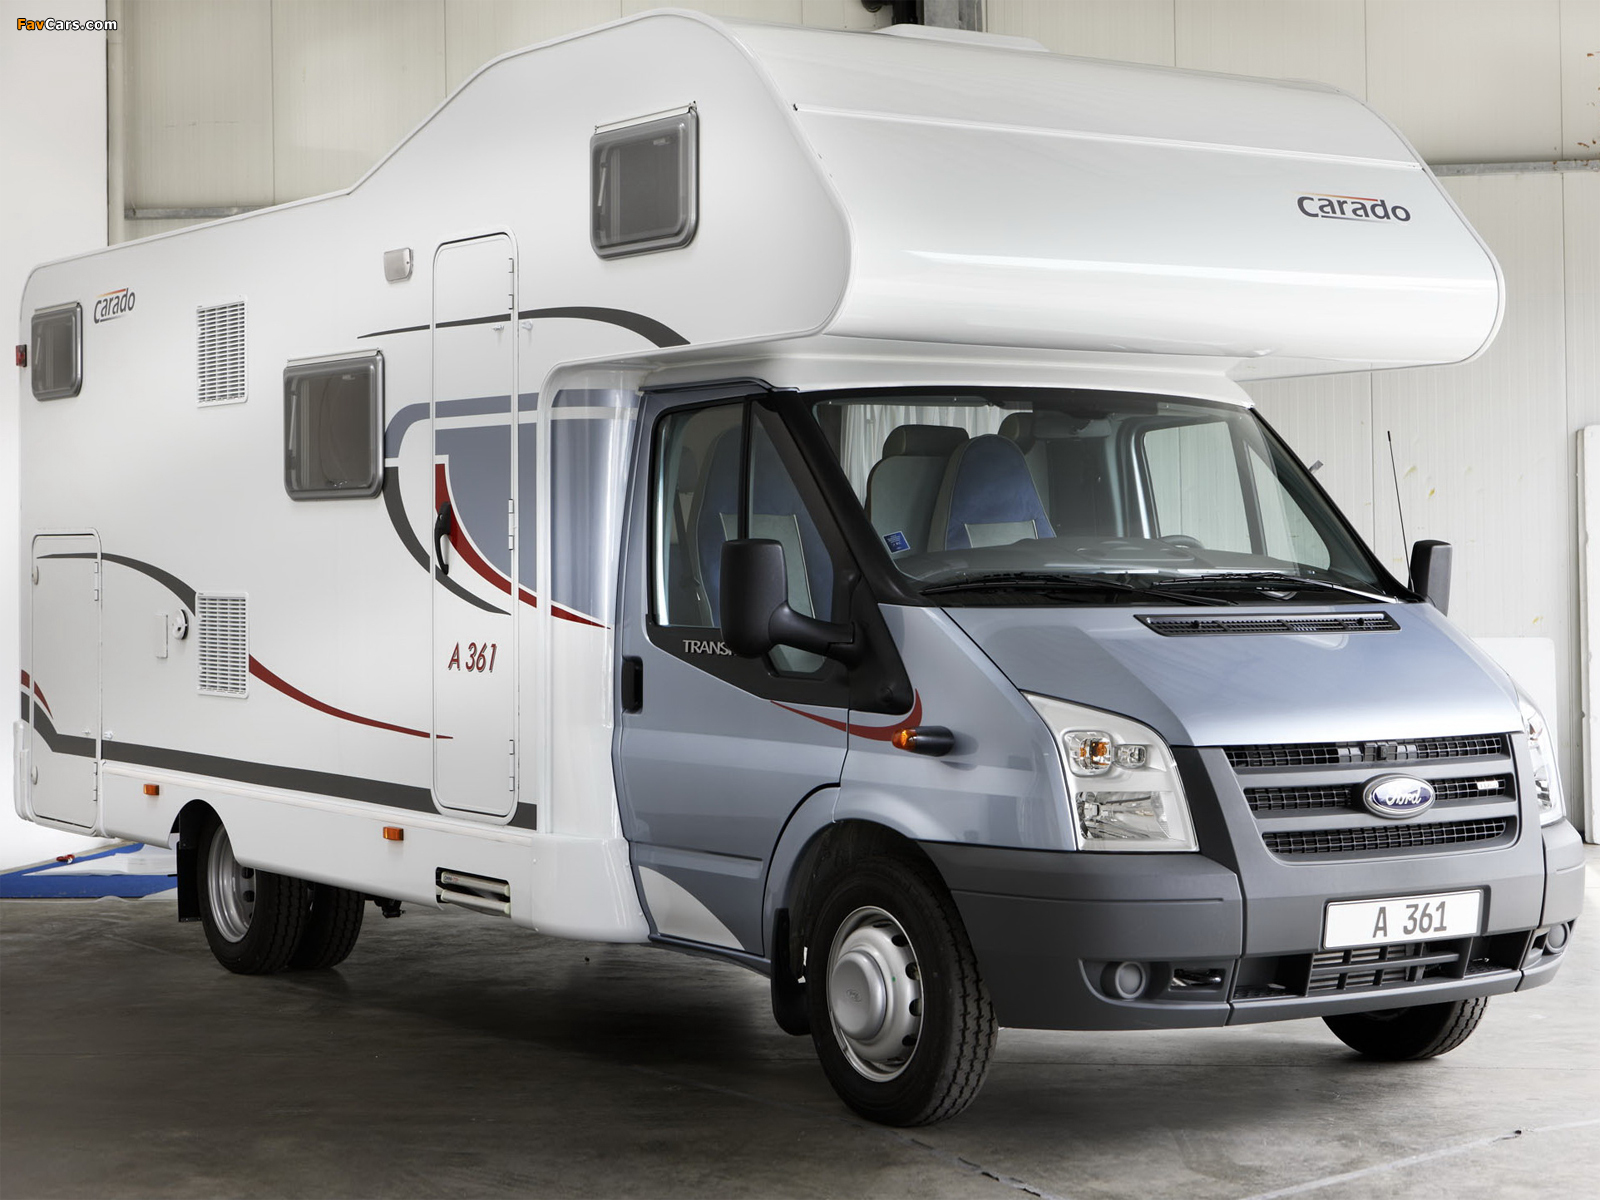 Carado A361 based on Ford Transit 2009 images (1600 x 1200)